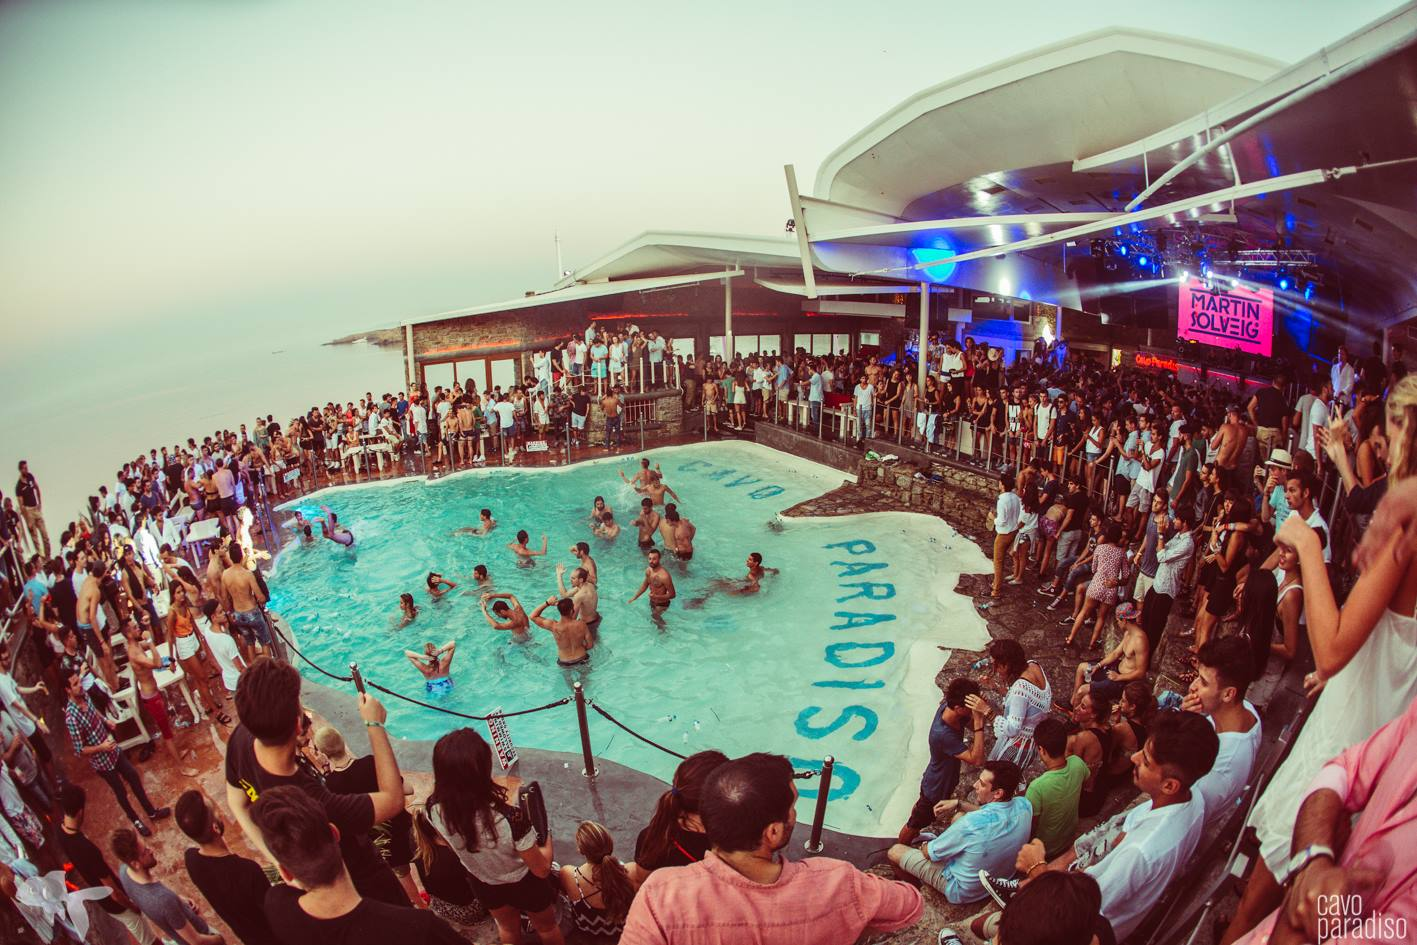 A night at Cavo Paradiso doesn't stop when the sun comes up.